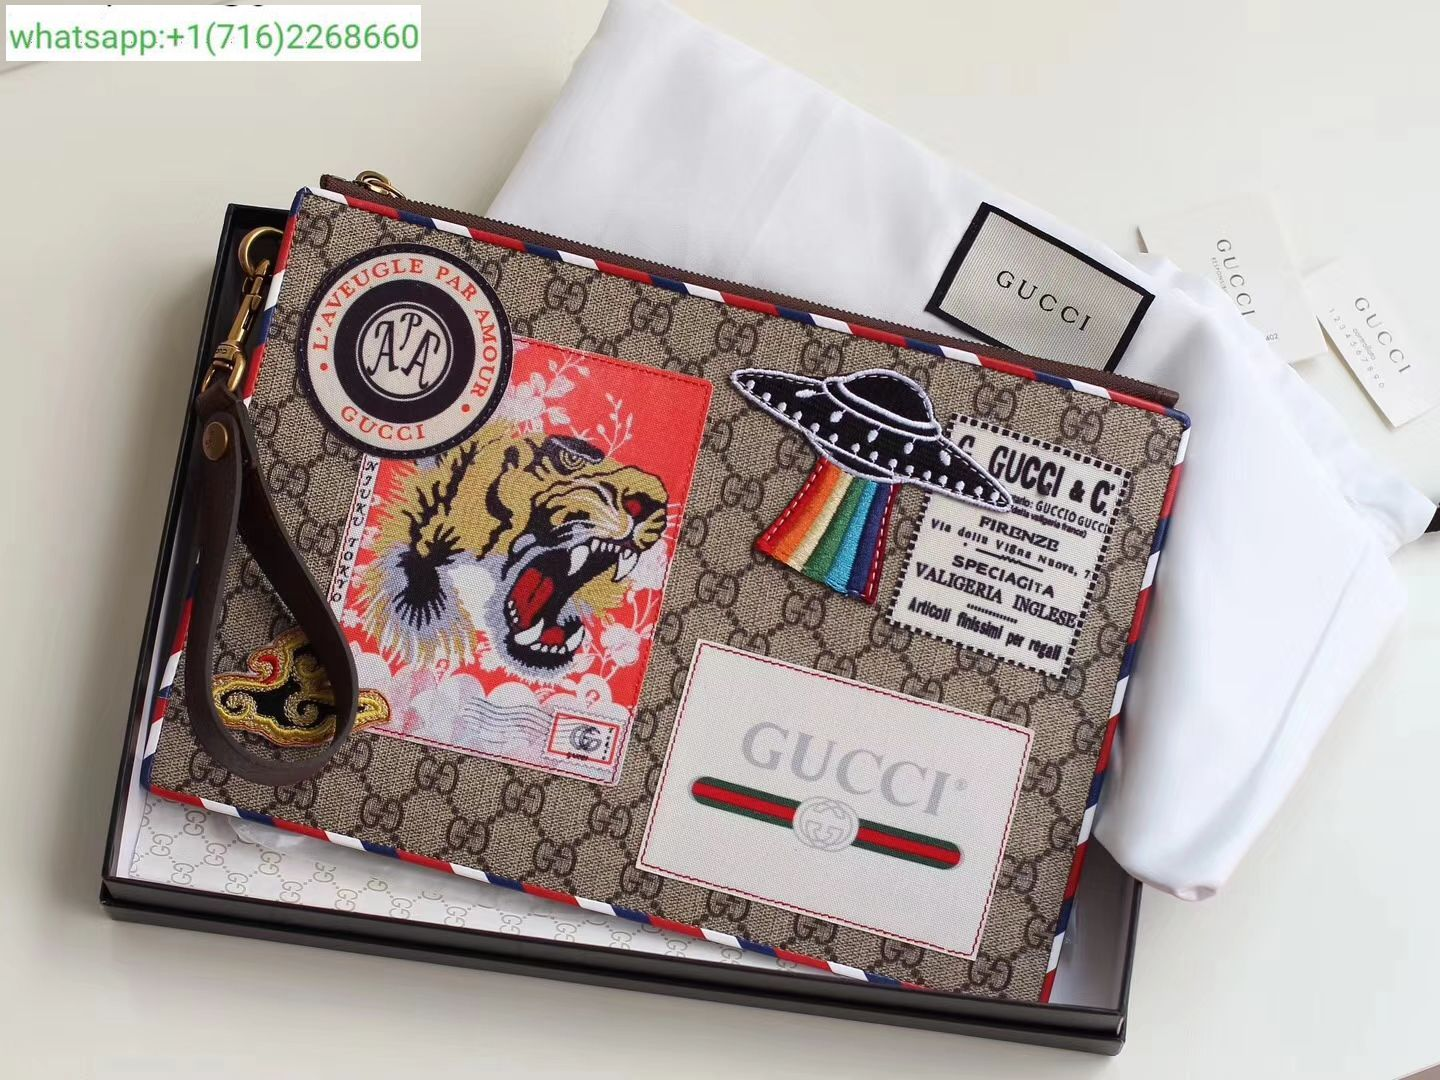 cab1d96d7162 Gucci Courrier GG Supreme pouch 473915 | gucci | Gucci, Fashion, Wallet